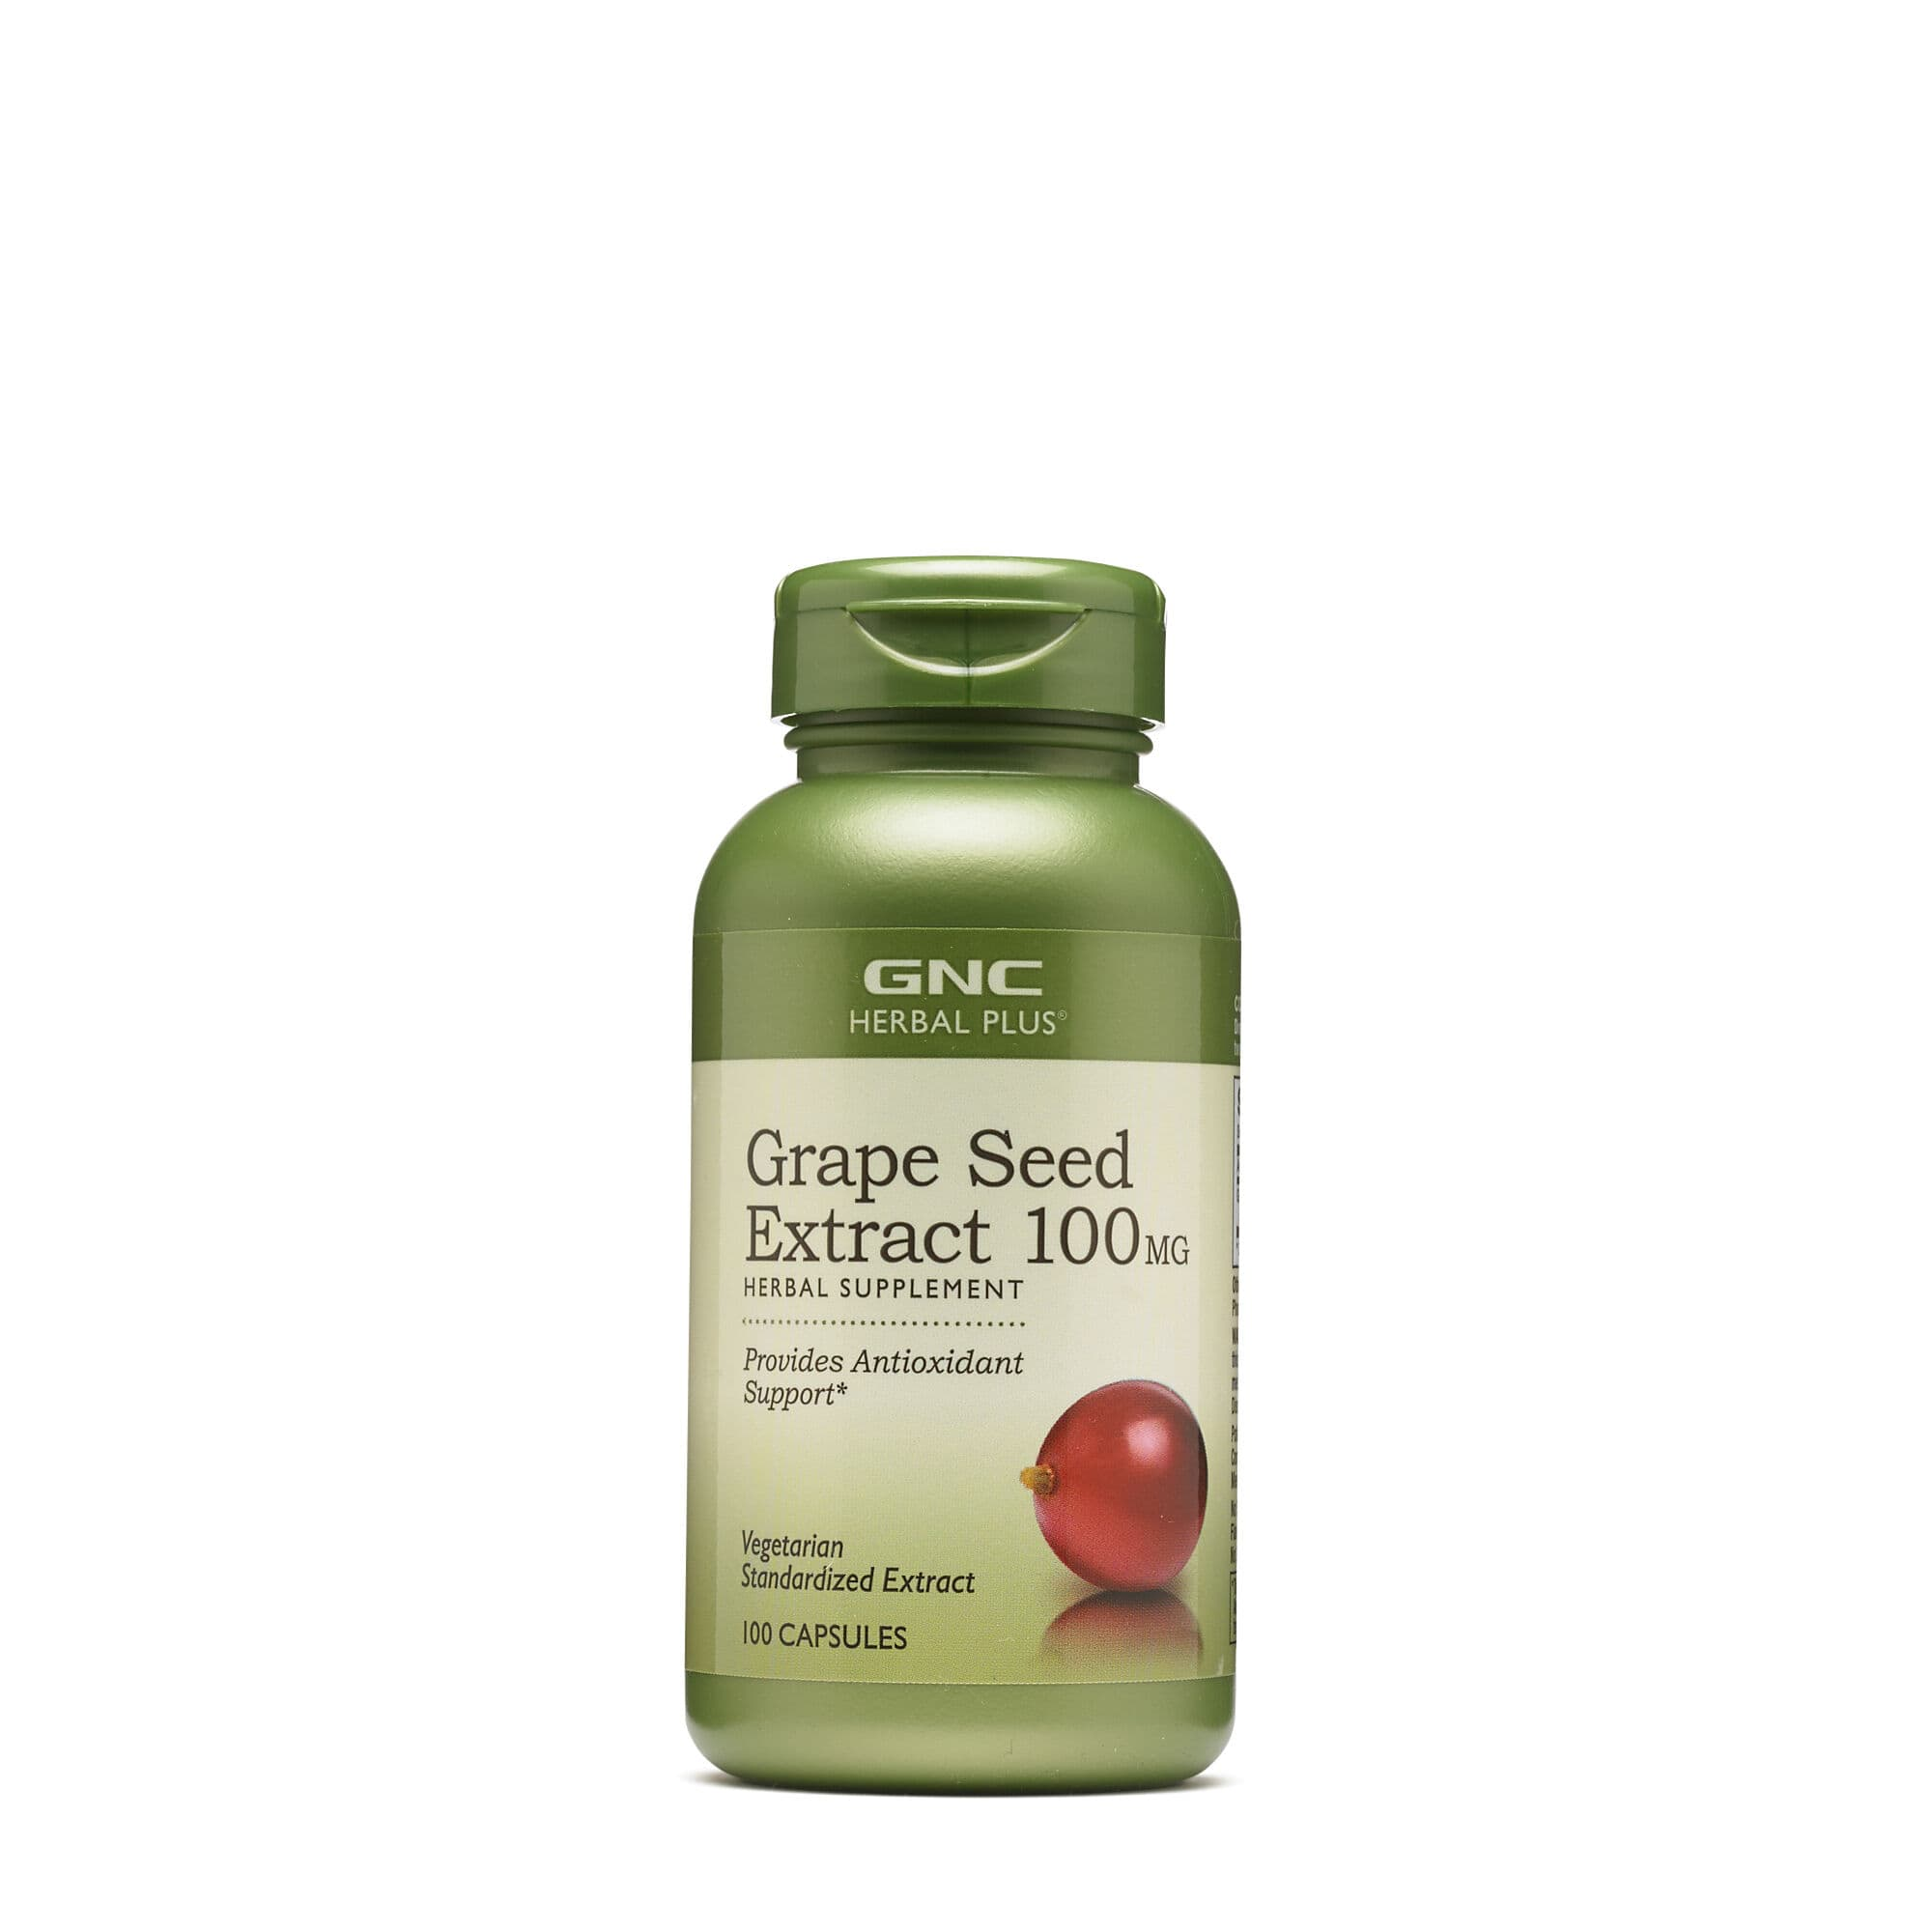 100-Mg GNC Herbal Plus Grape Seed Extract $2.69, 100-Count GNC Herbal Plus Vitamin C Plus Echinacea $3.62, More w/ S&S + SD Cashback + F/S